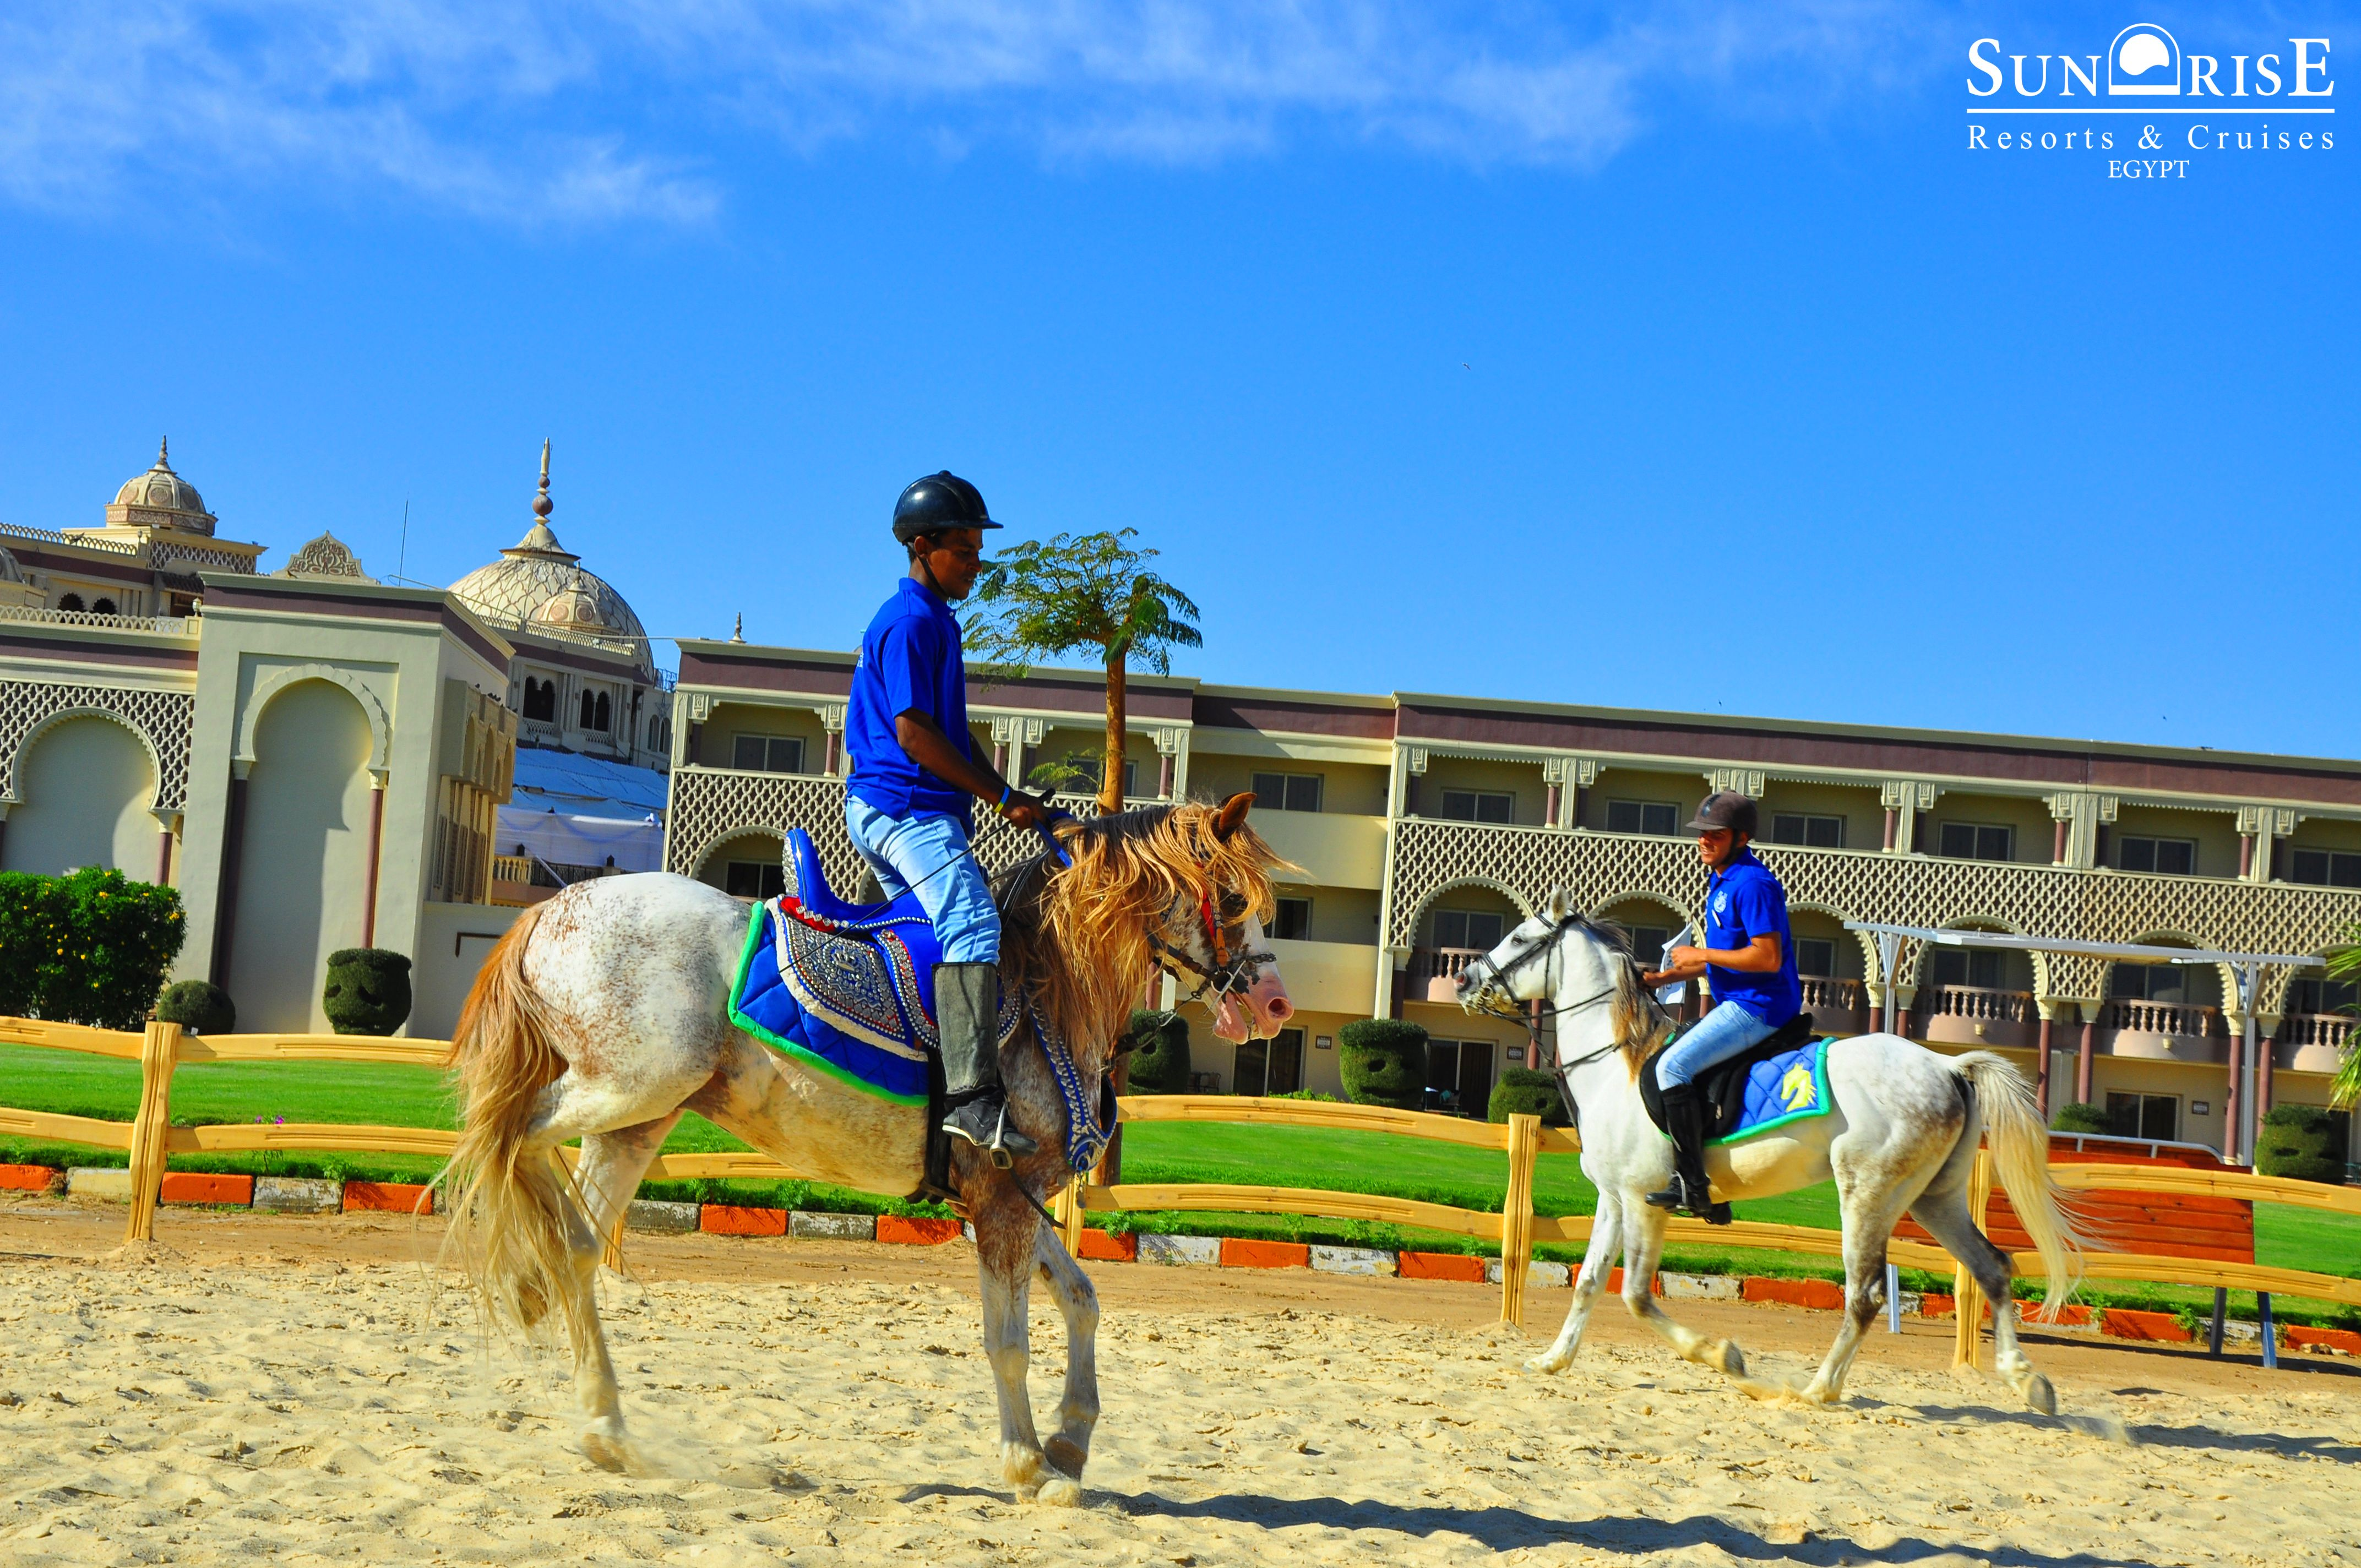 To Ride On A Horse Is To Fly Without Wings Sunrise Garden Beach Resort Select Sentido Mamlouk Palace Resort Sunriseresortsandc Sunrise Resort Horses Resort